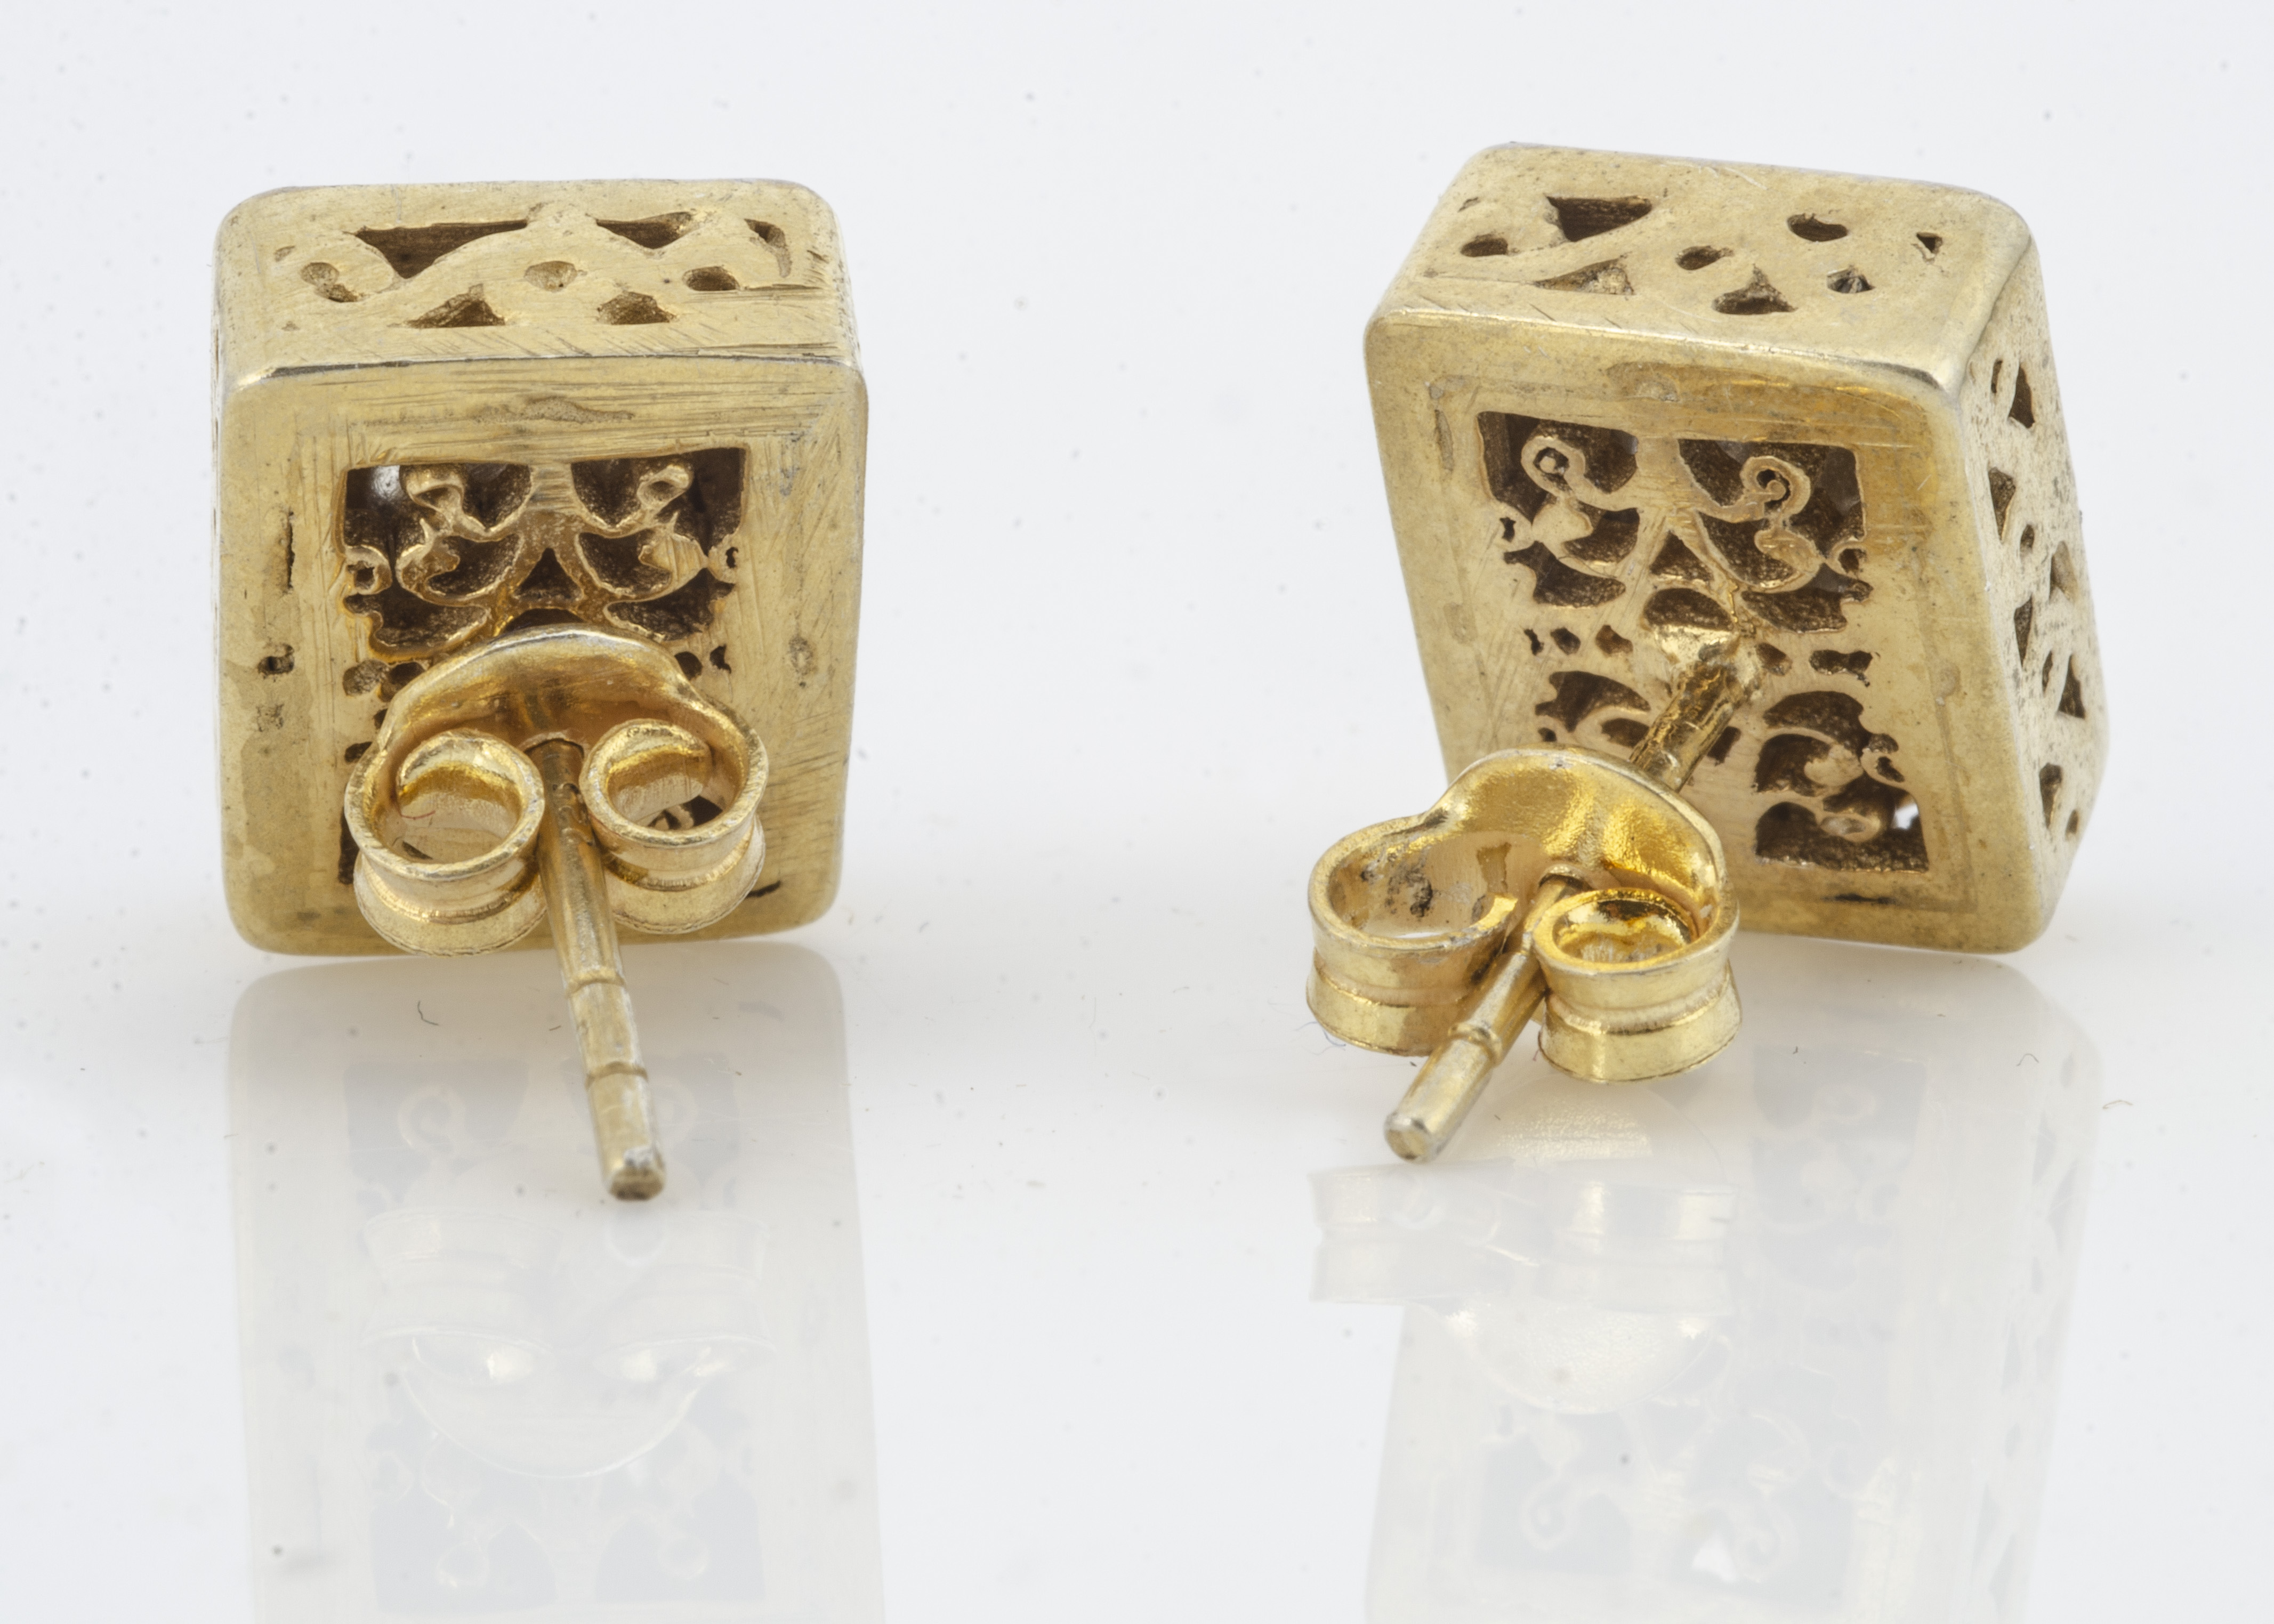 A pair of silver gilt and diamond slither stud earrings, in rubbed over settings of rectangular - Image 2 of 2